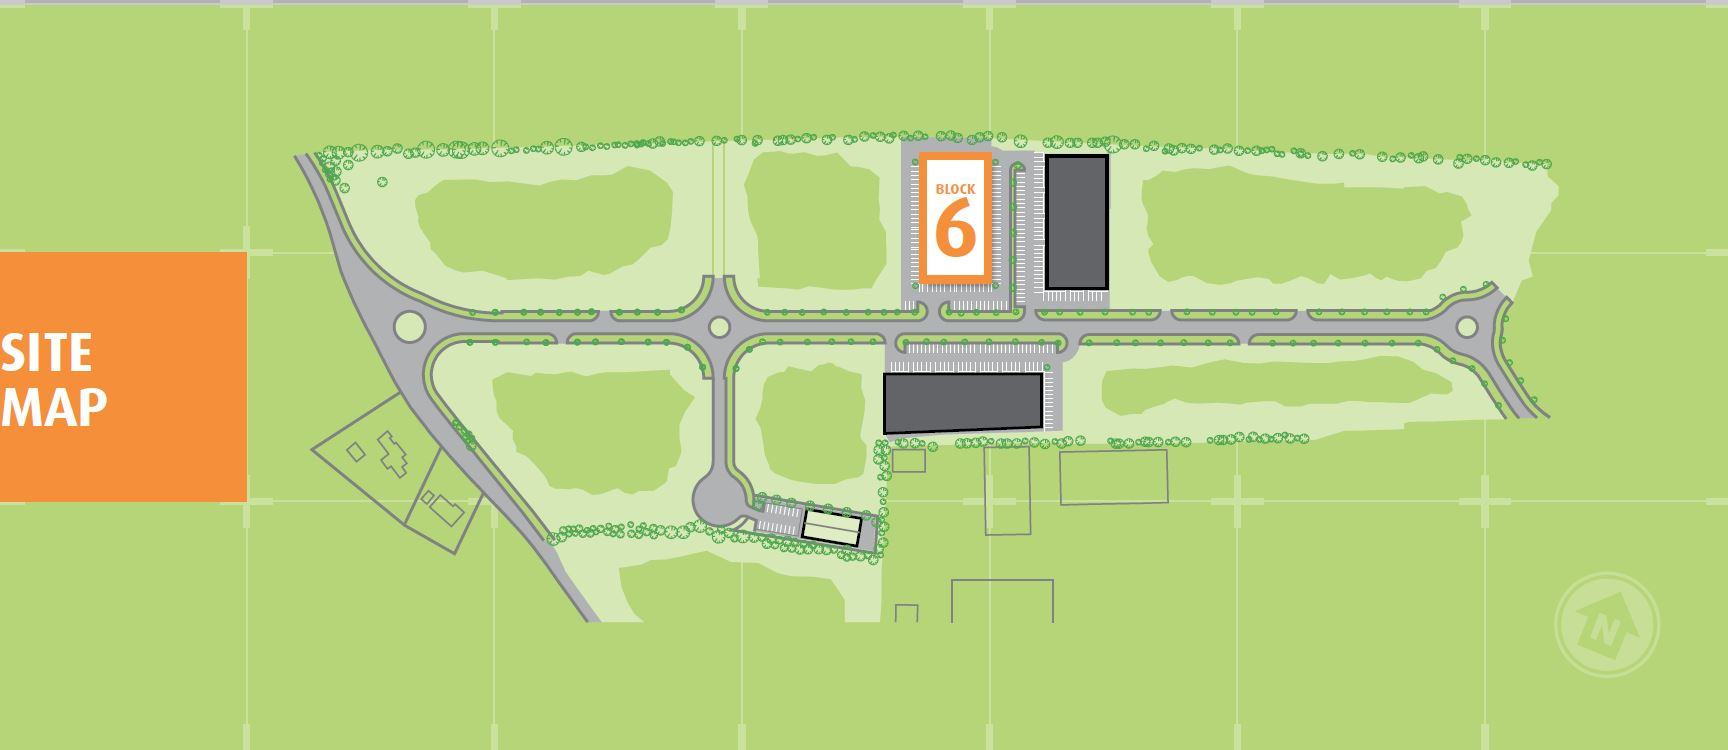 Block 6 - Edenderry Business Campus